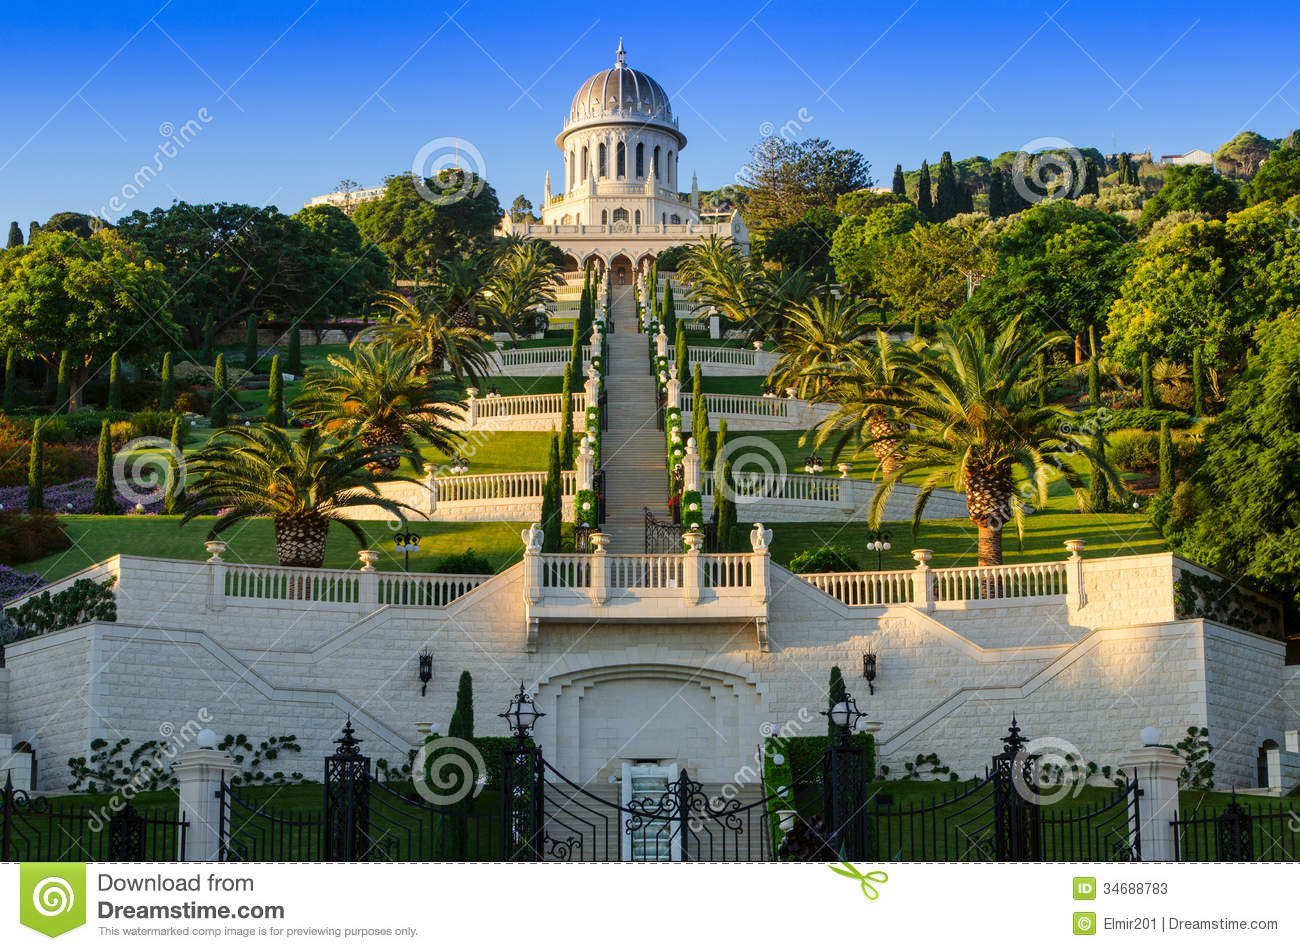 The Bahai Gardens Stock Photos - Image: 34688783